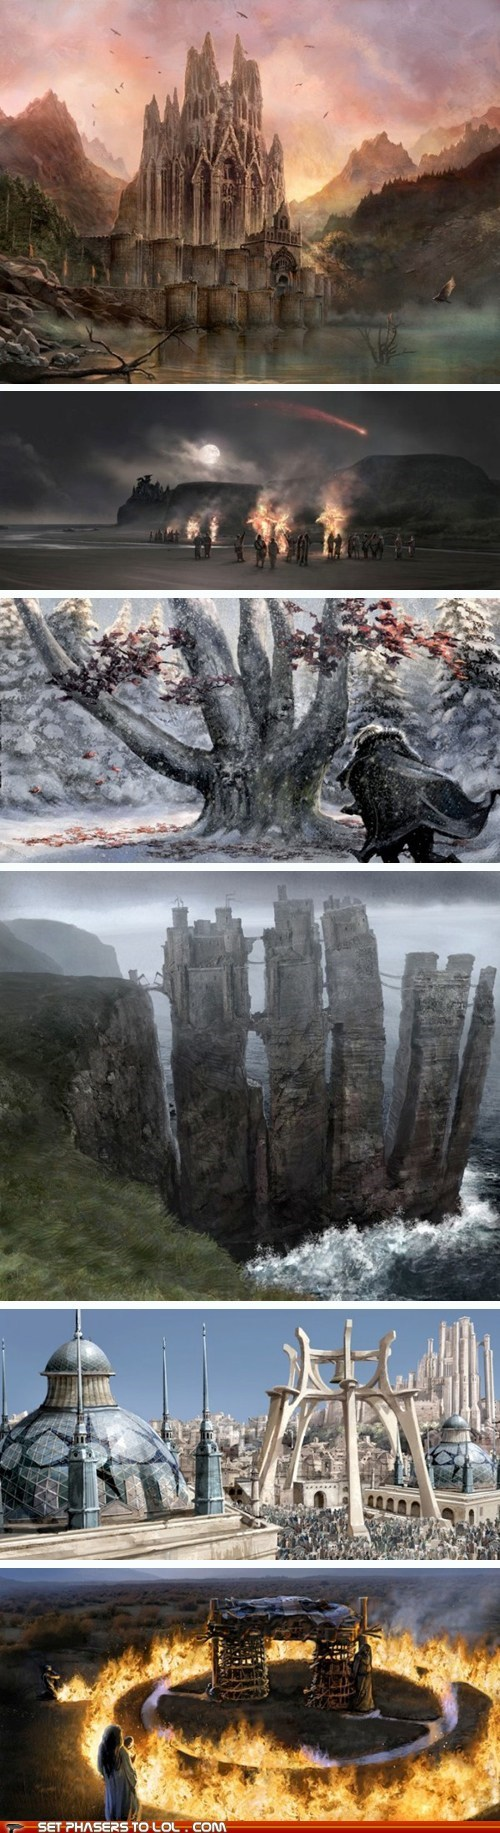 a song of ice and fire,beautiful,concept art,Game of Thrones,hbo,Westeros